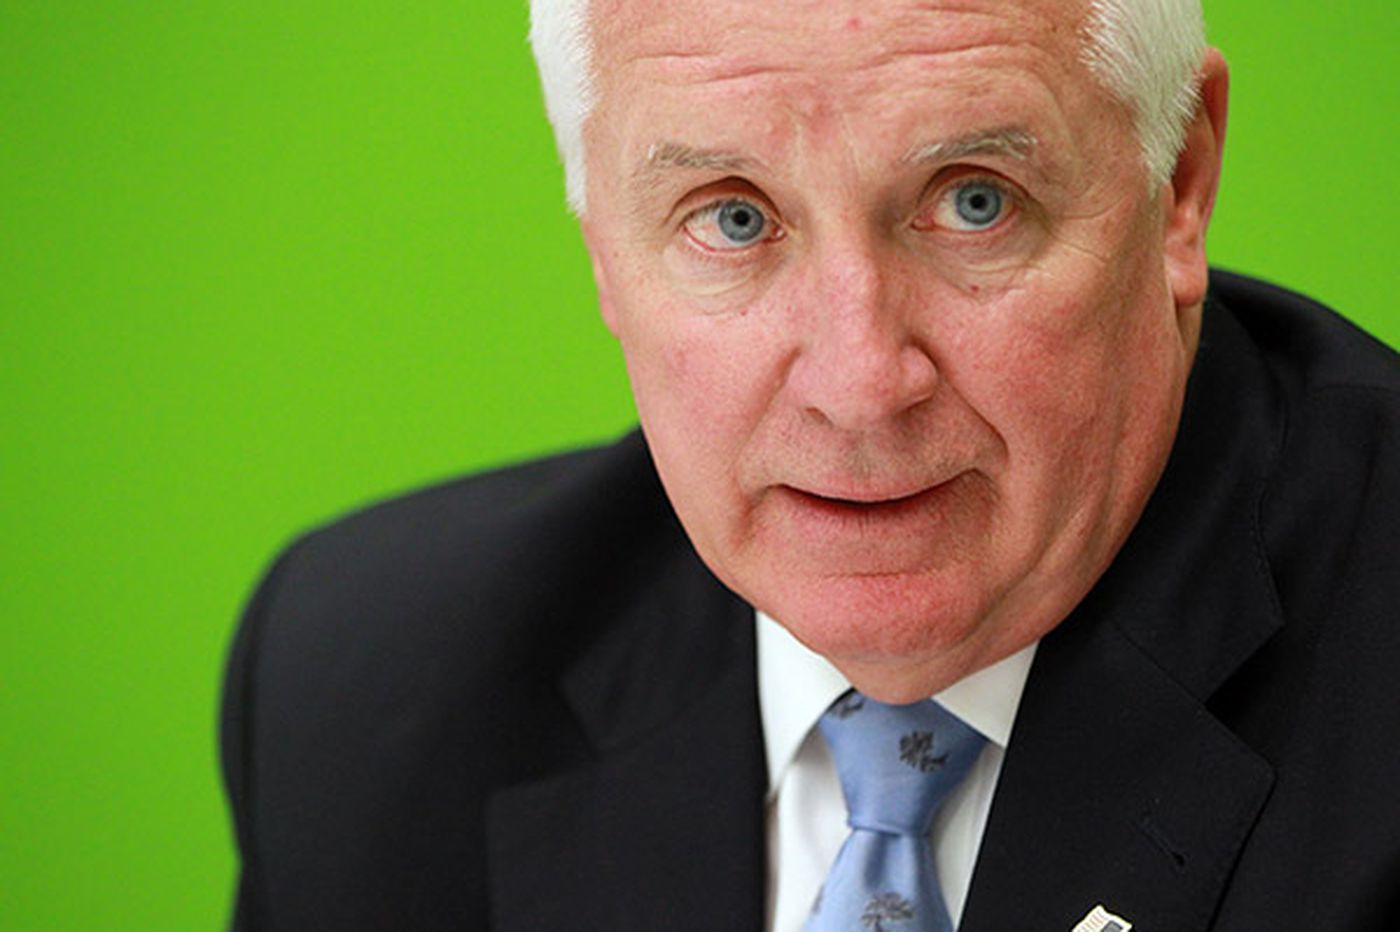 Corbett vows special session on pensions if reelected